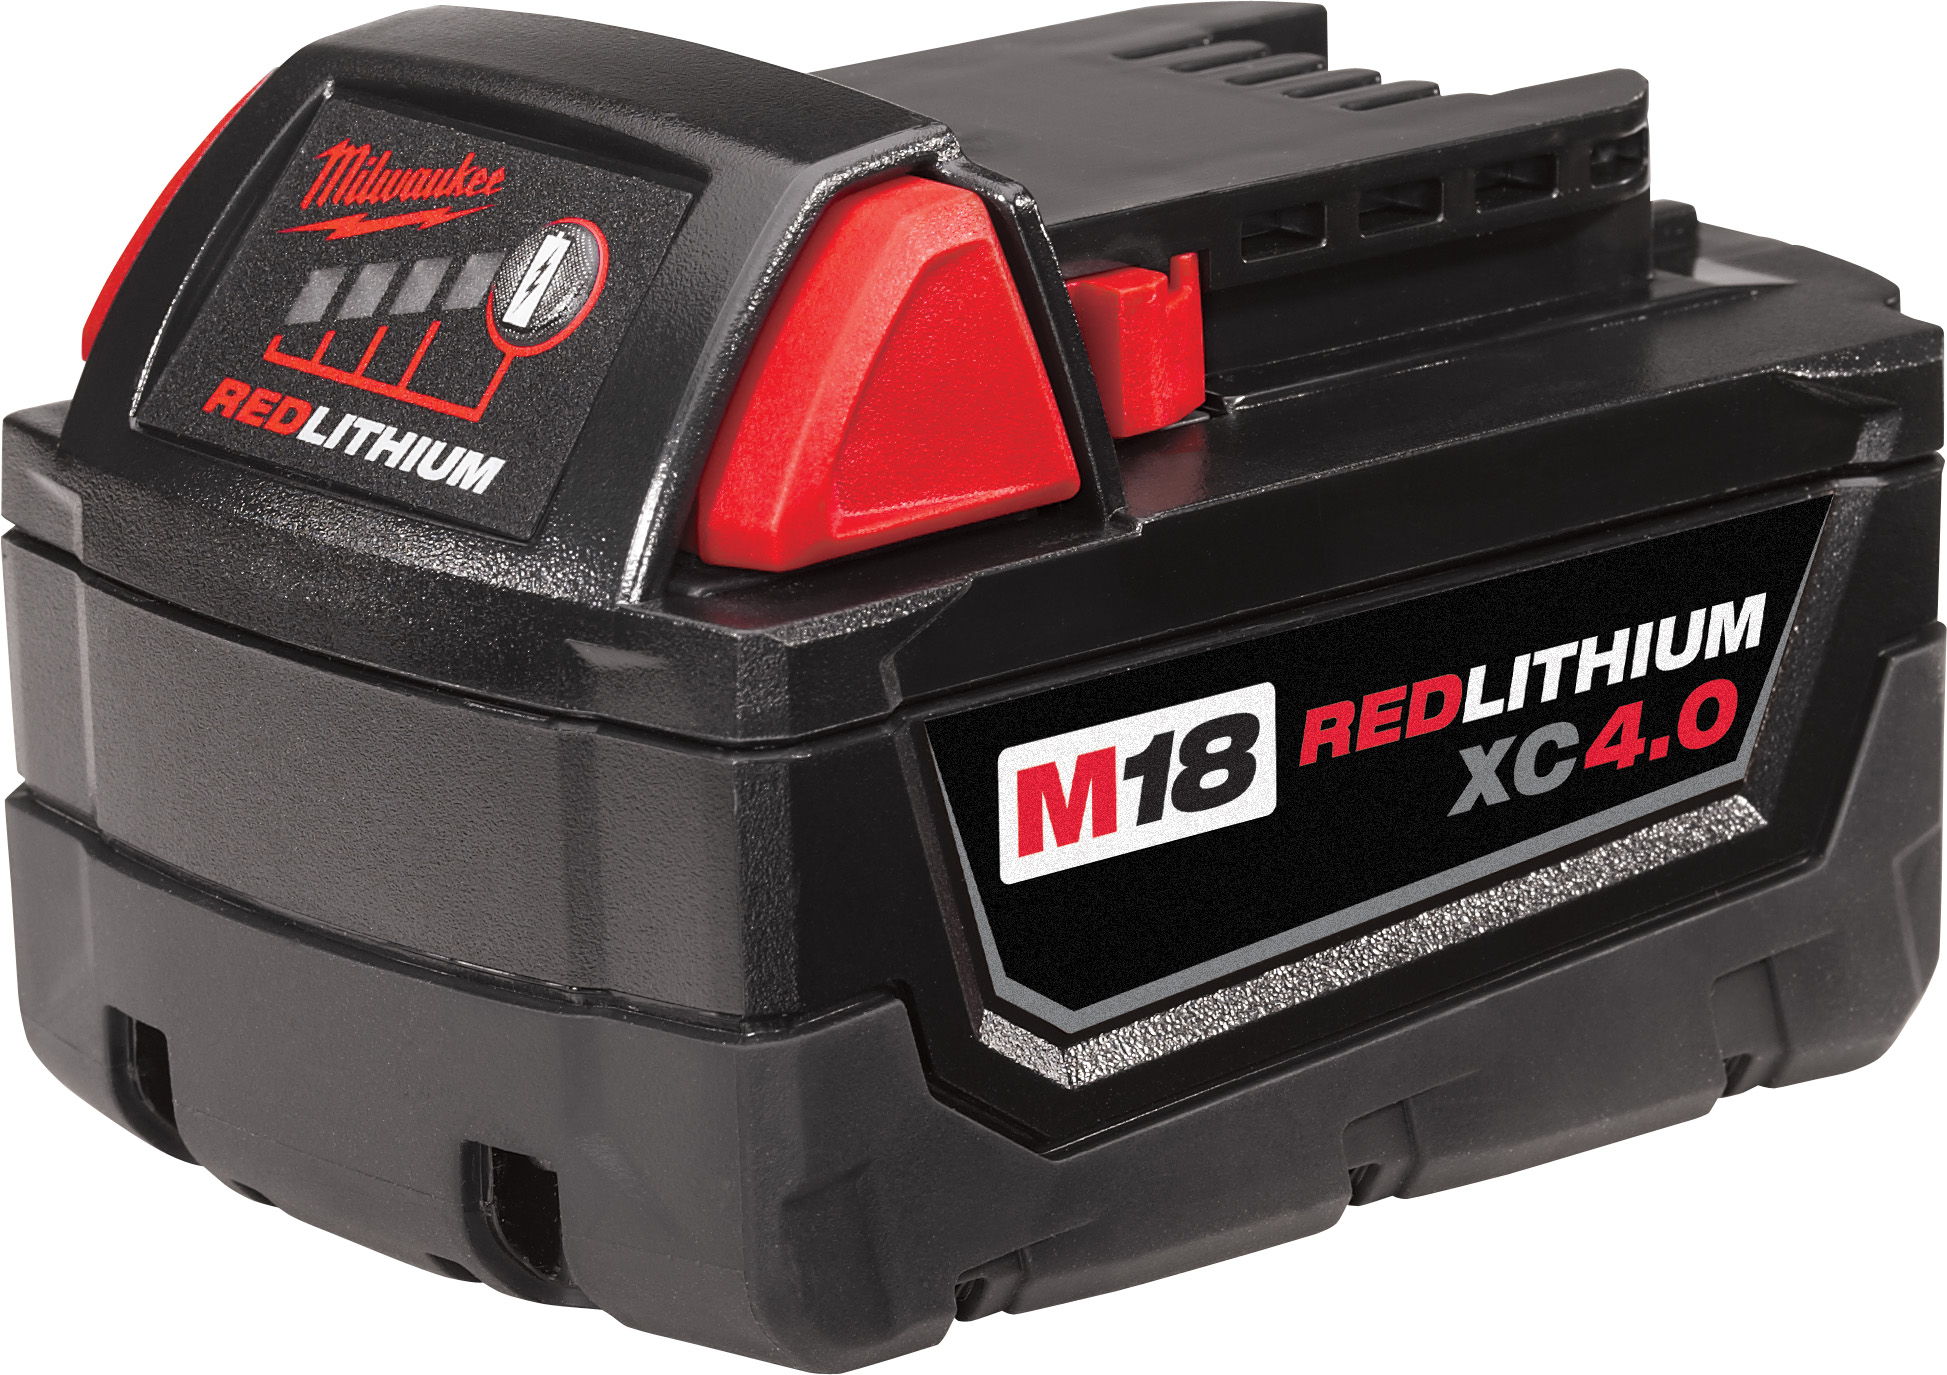 Milwaukee® M18™ REDLITHIUM™ 48-11-1840 Rechargeable Cordless Battery Pack, 4 Ah Lithium-Ion Battery, 18 VDC Charge, For Use With Milwaukee® M18™ Cordless Power Tool